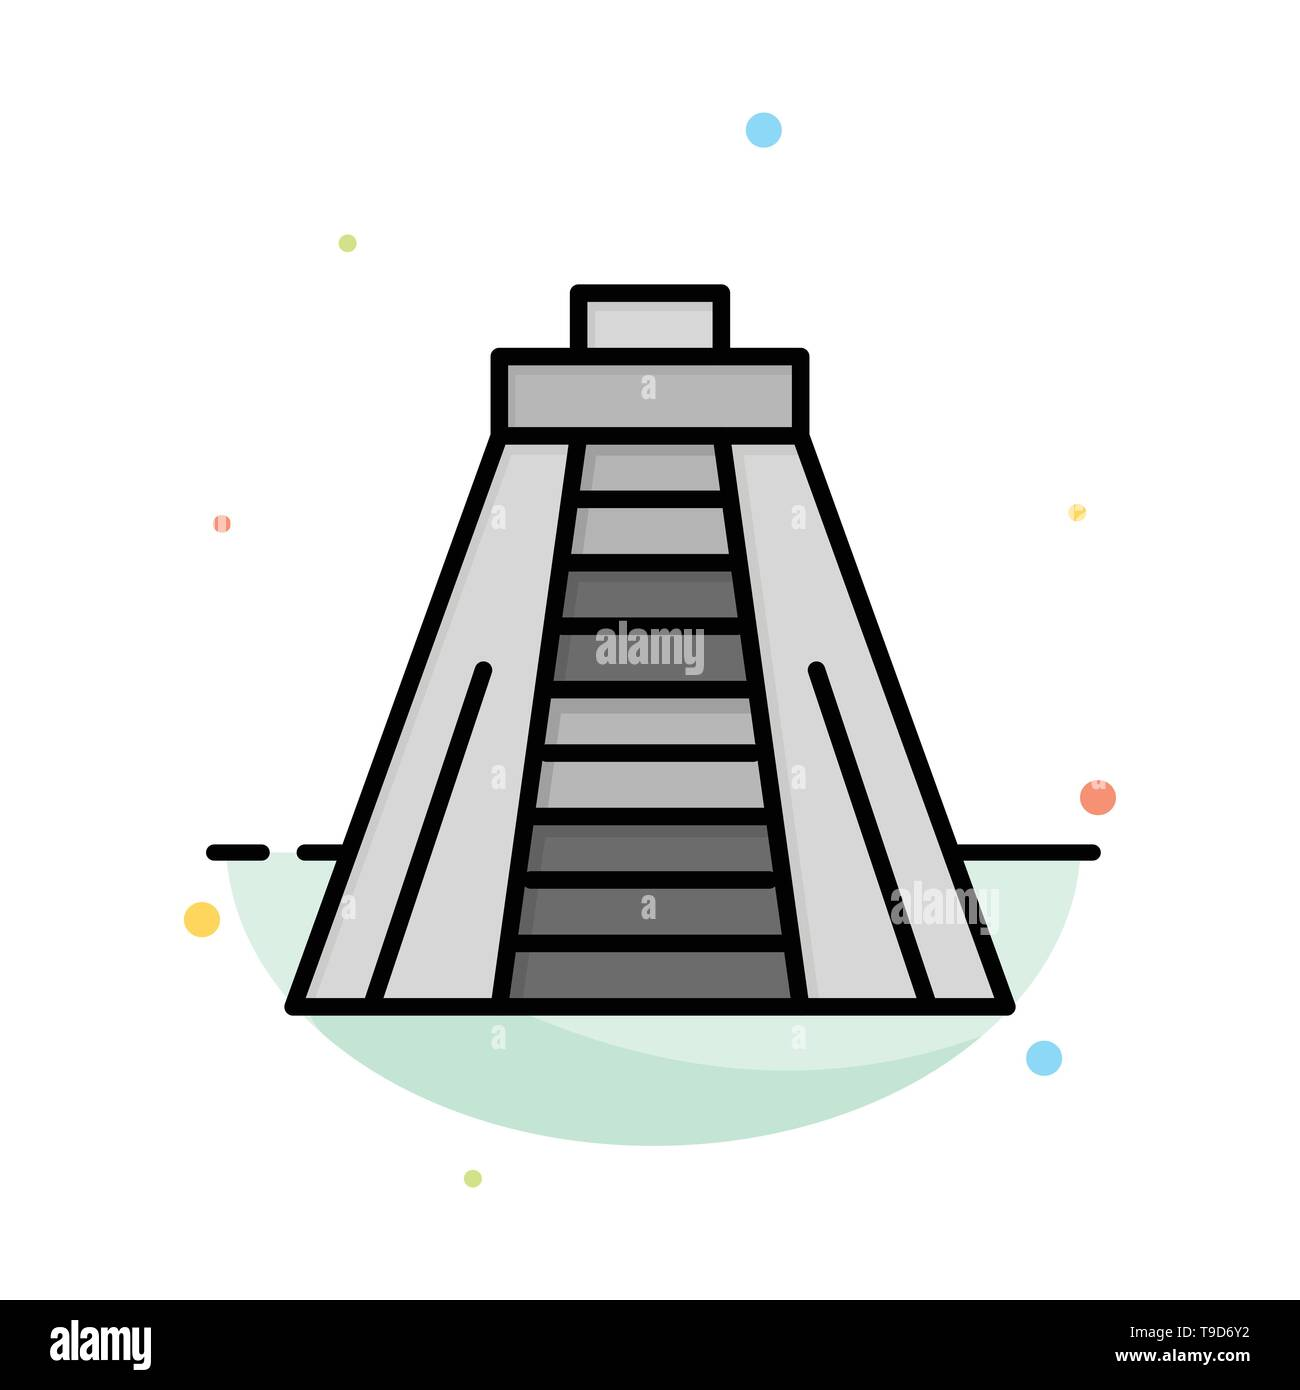 Chichen Itza, Landmark, Monument Abstract Flat Color Icon Template - Stock Image